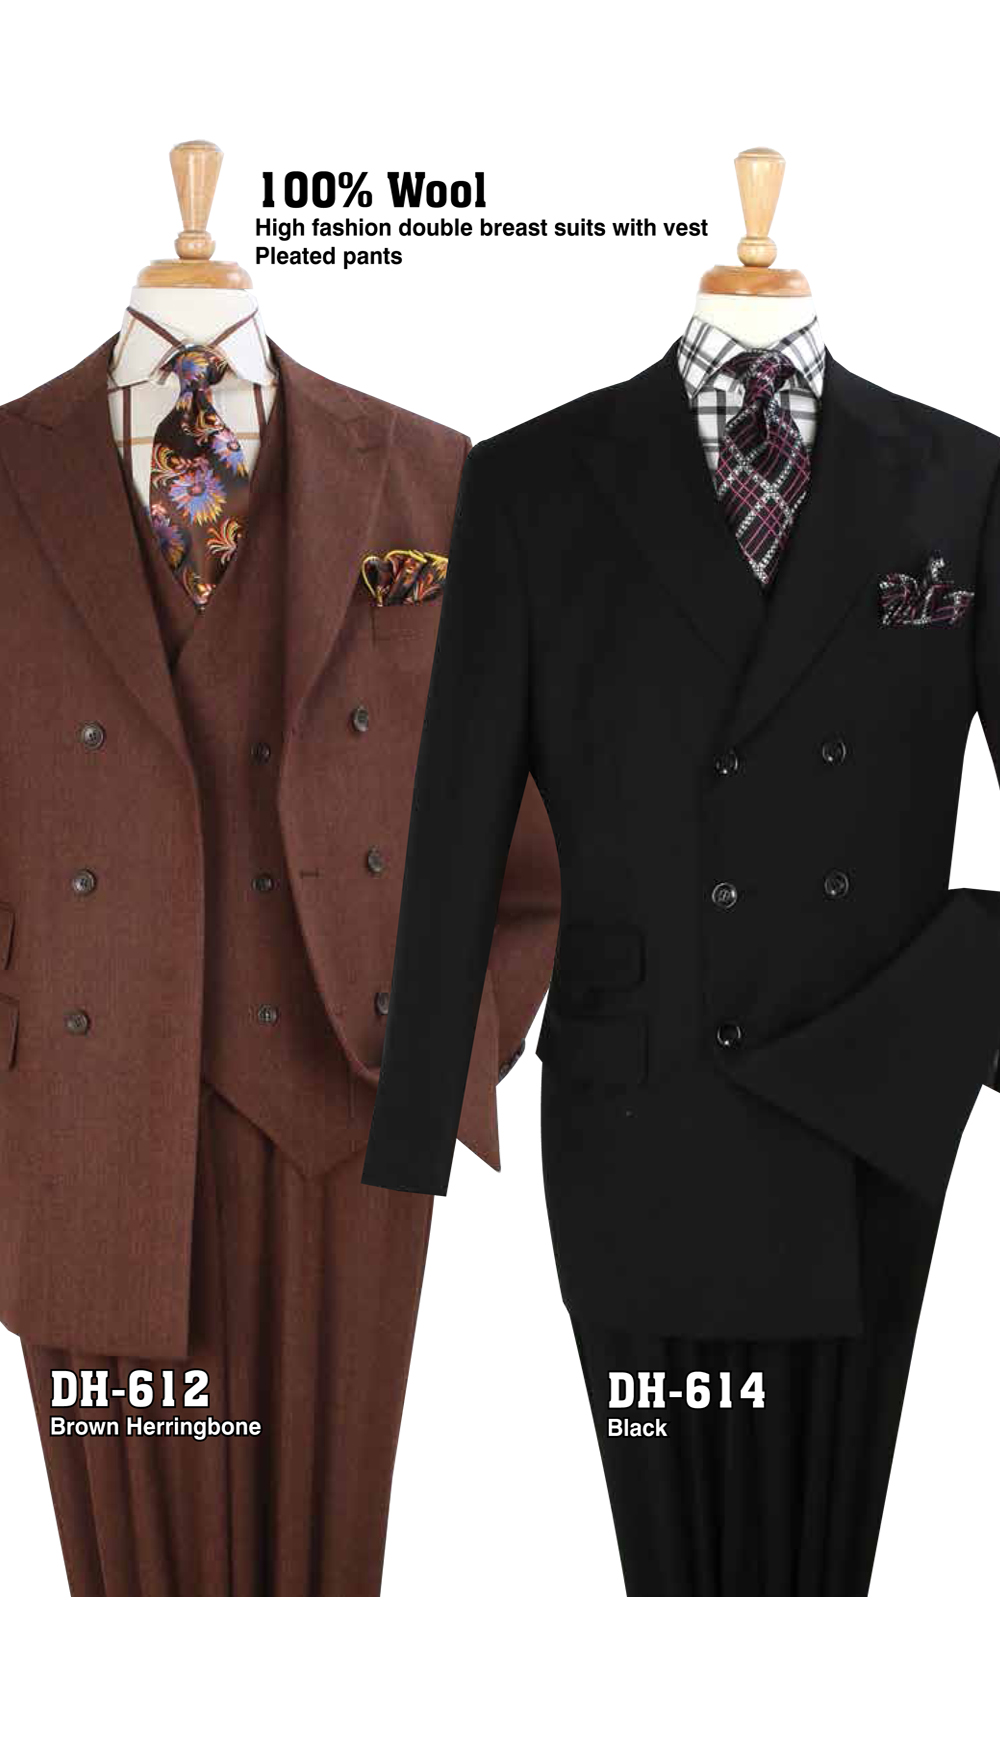 High Fashion Men Suits DH-612